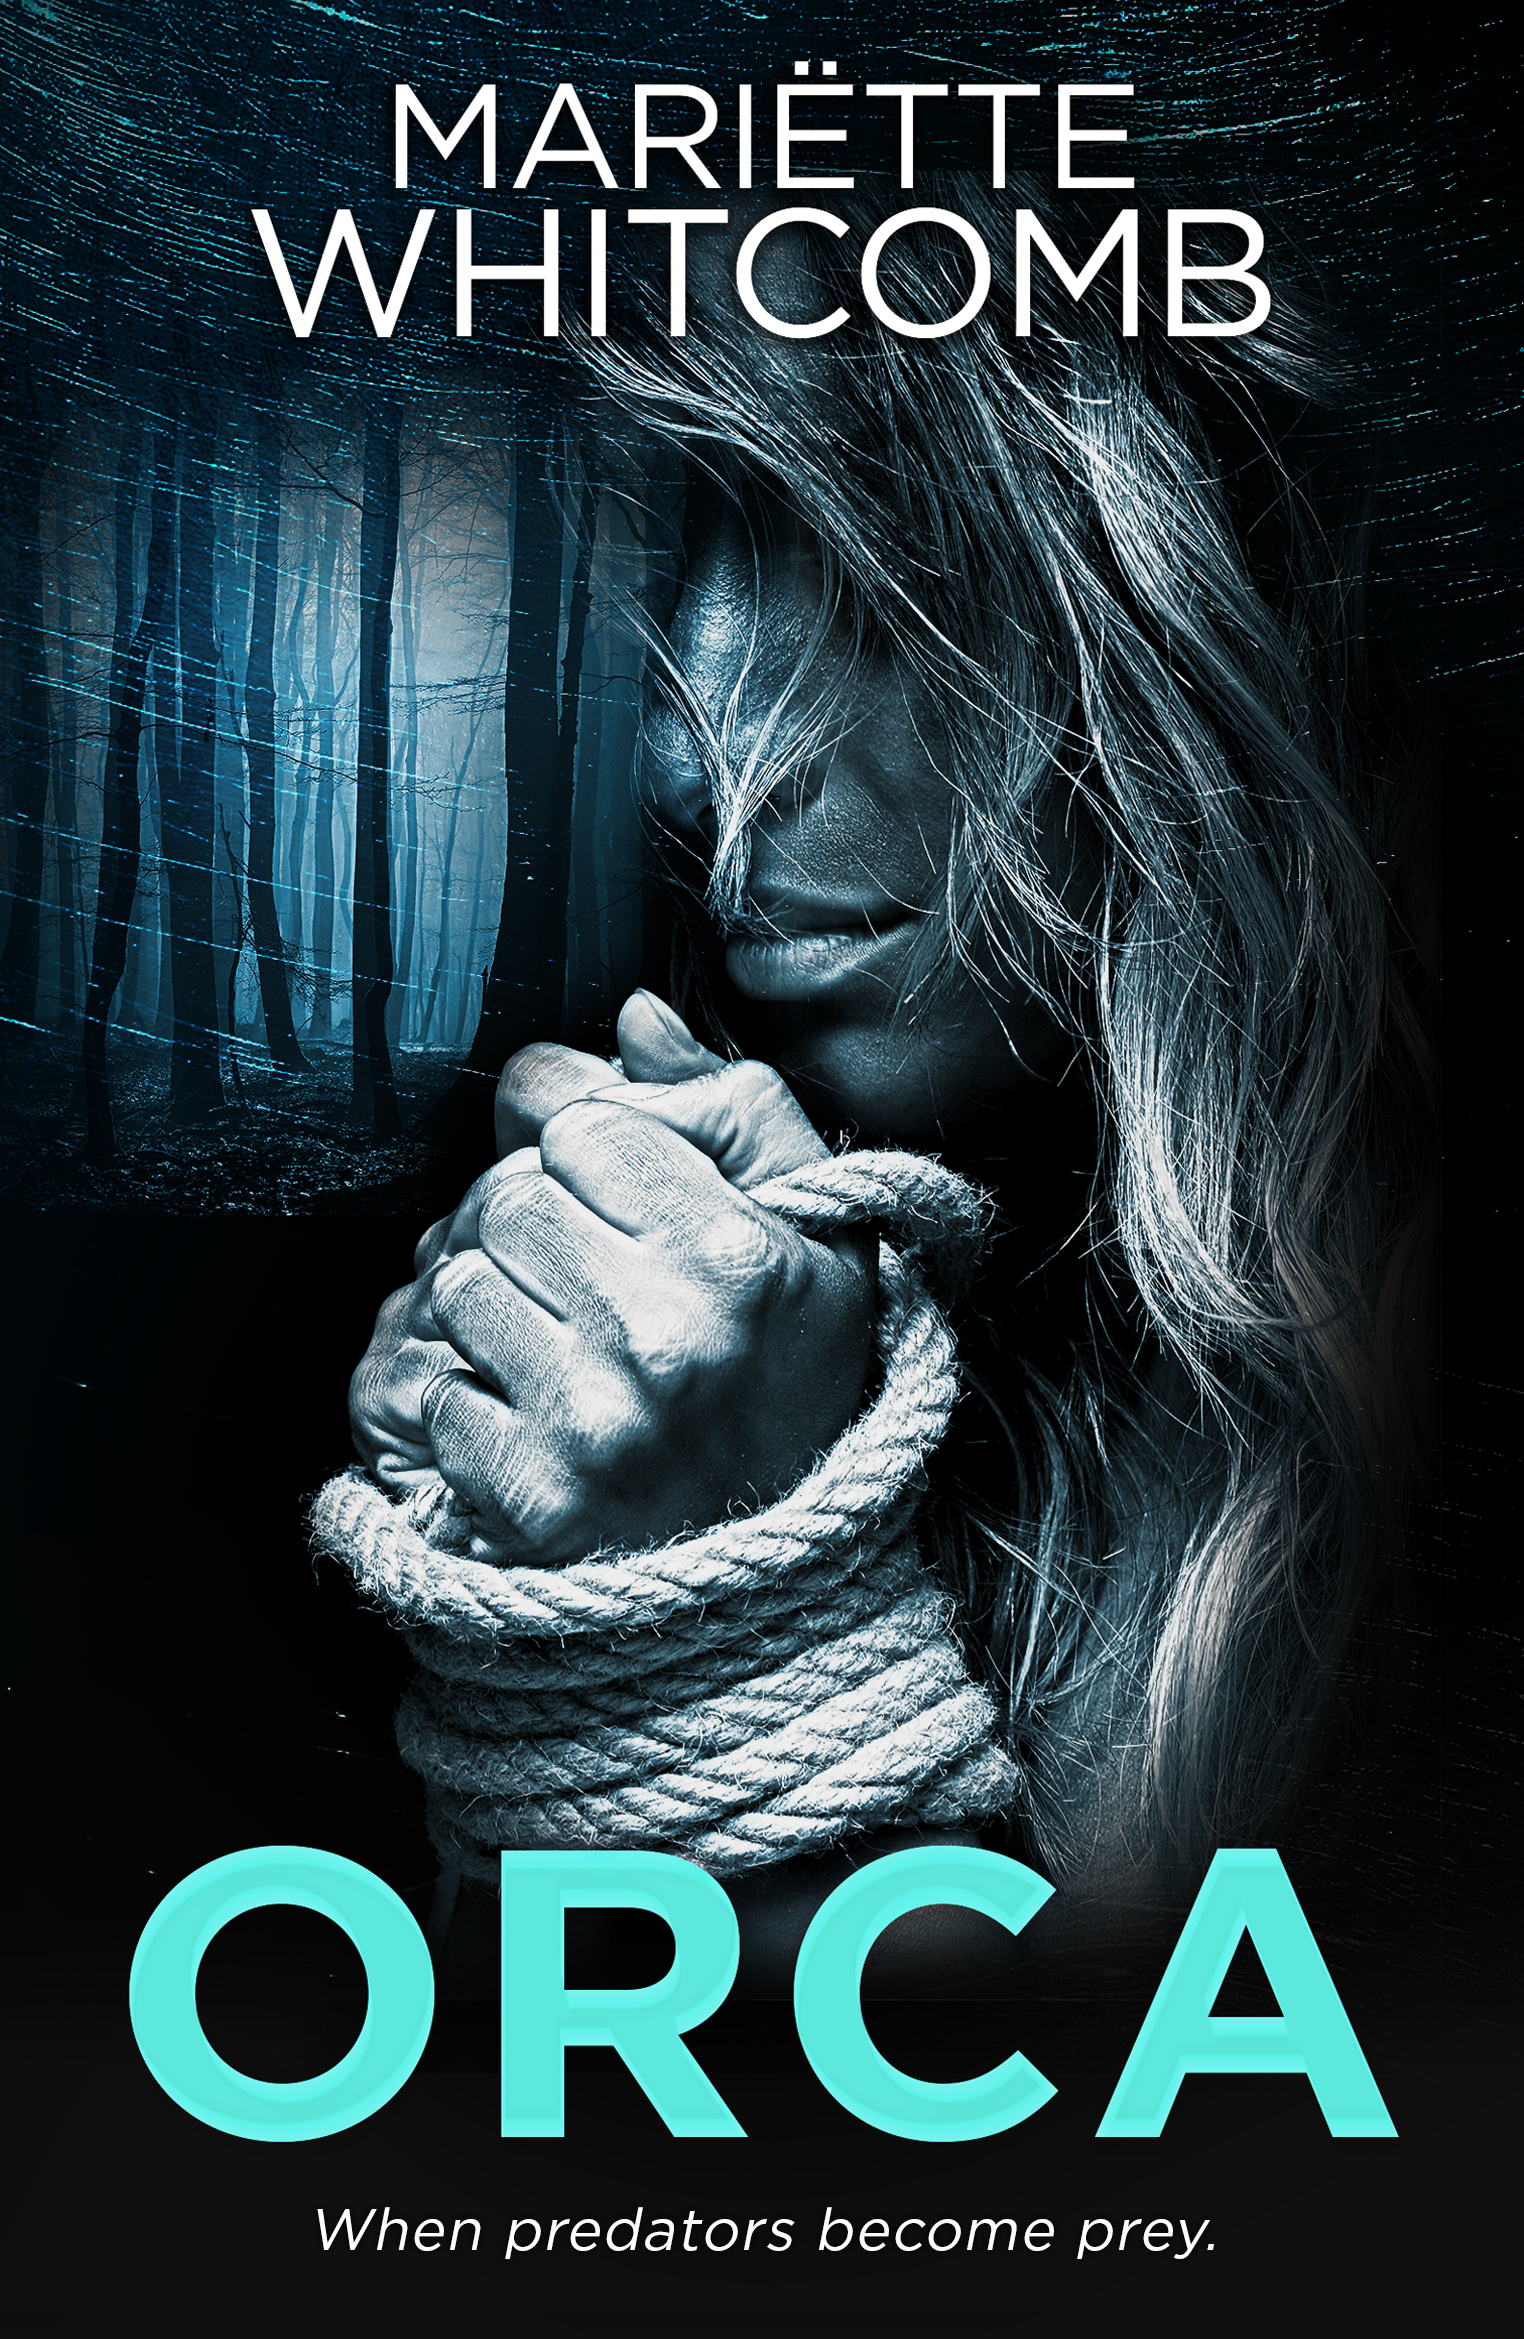 Cover art for Orca